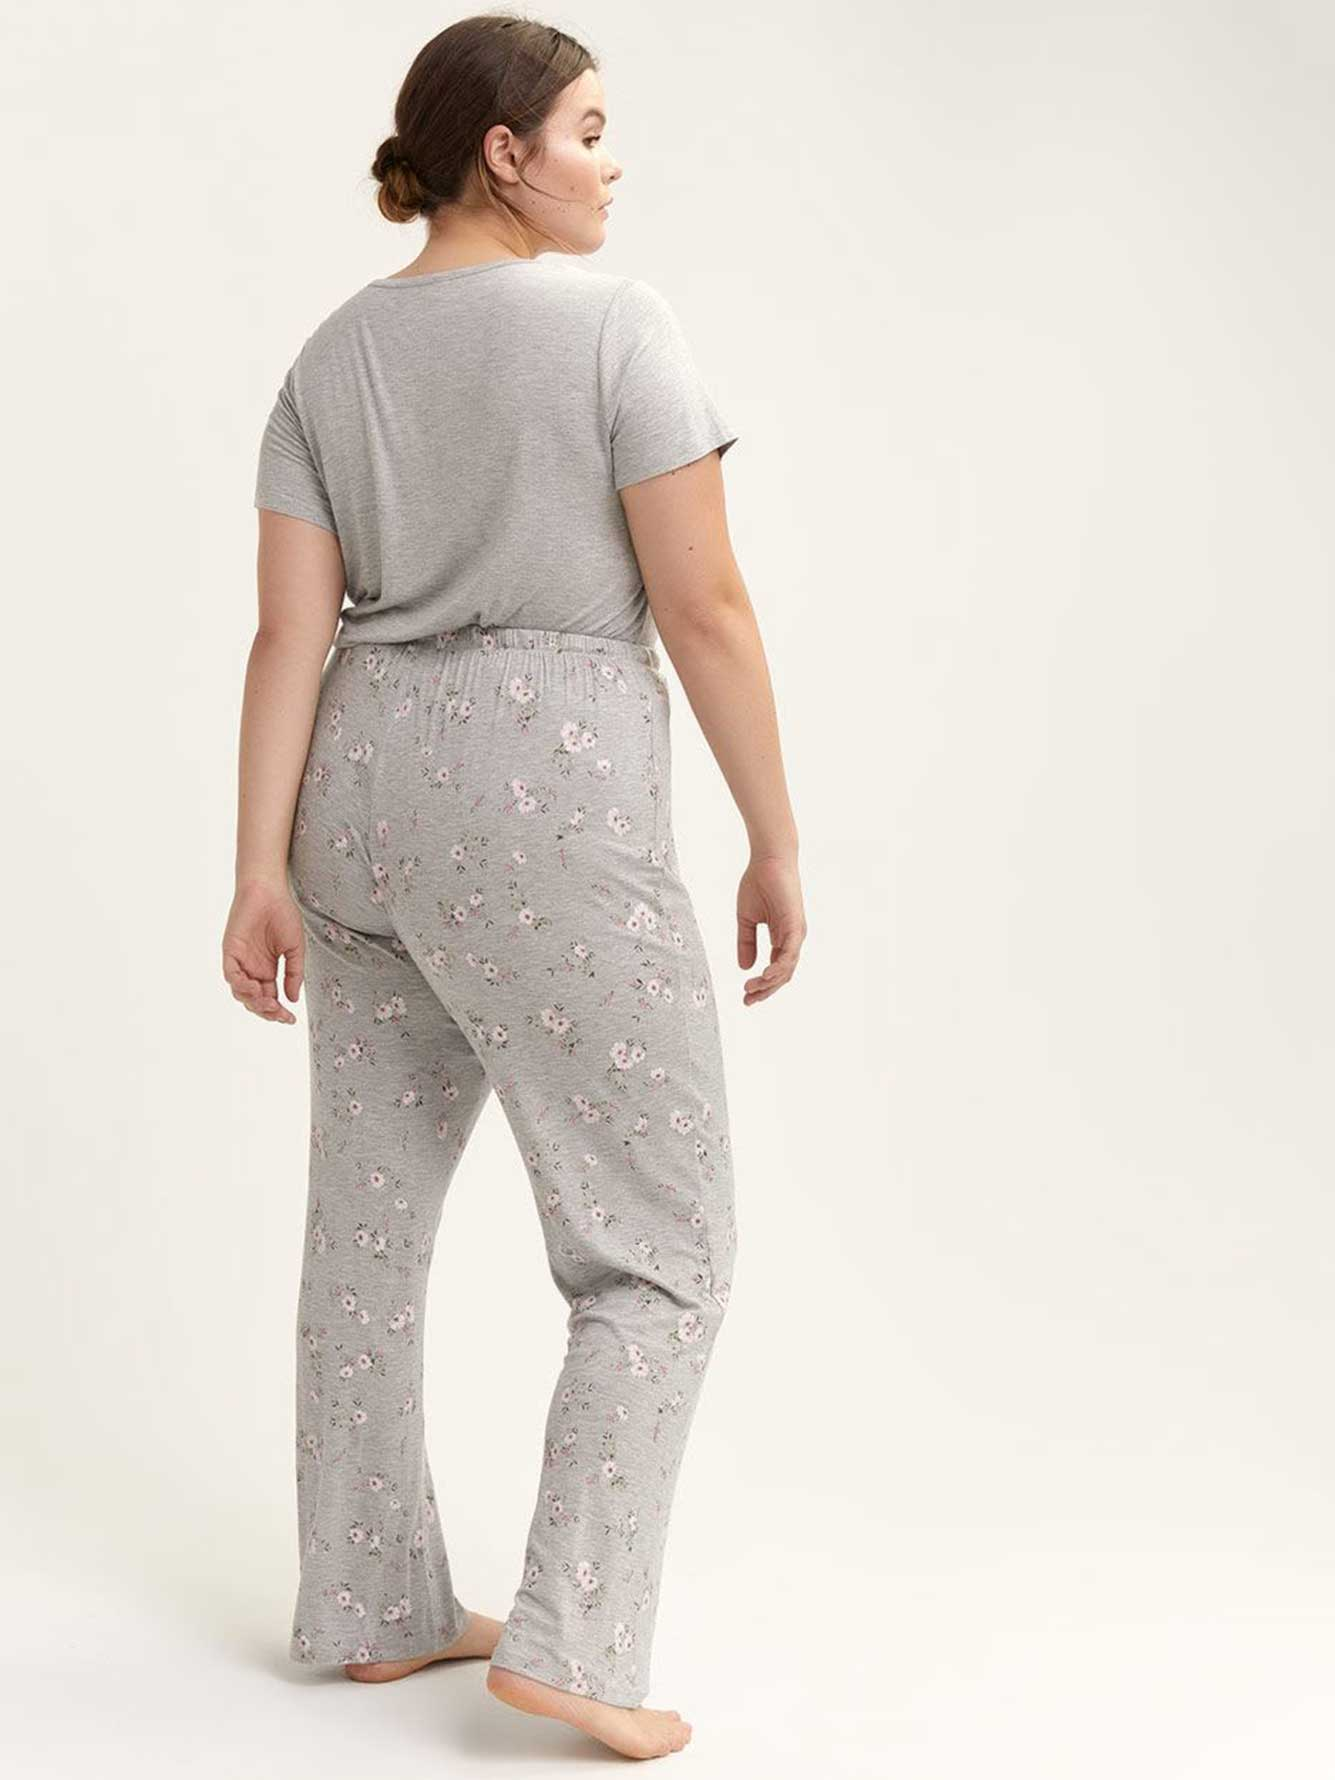 Straight Leg Pajama Pant - Déesse Collection  08126fbee